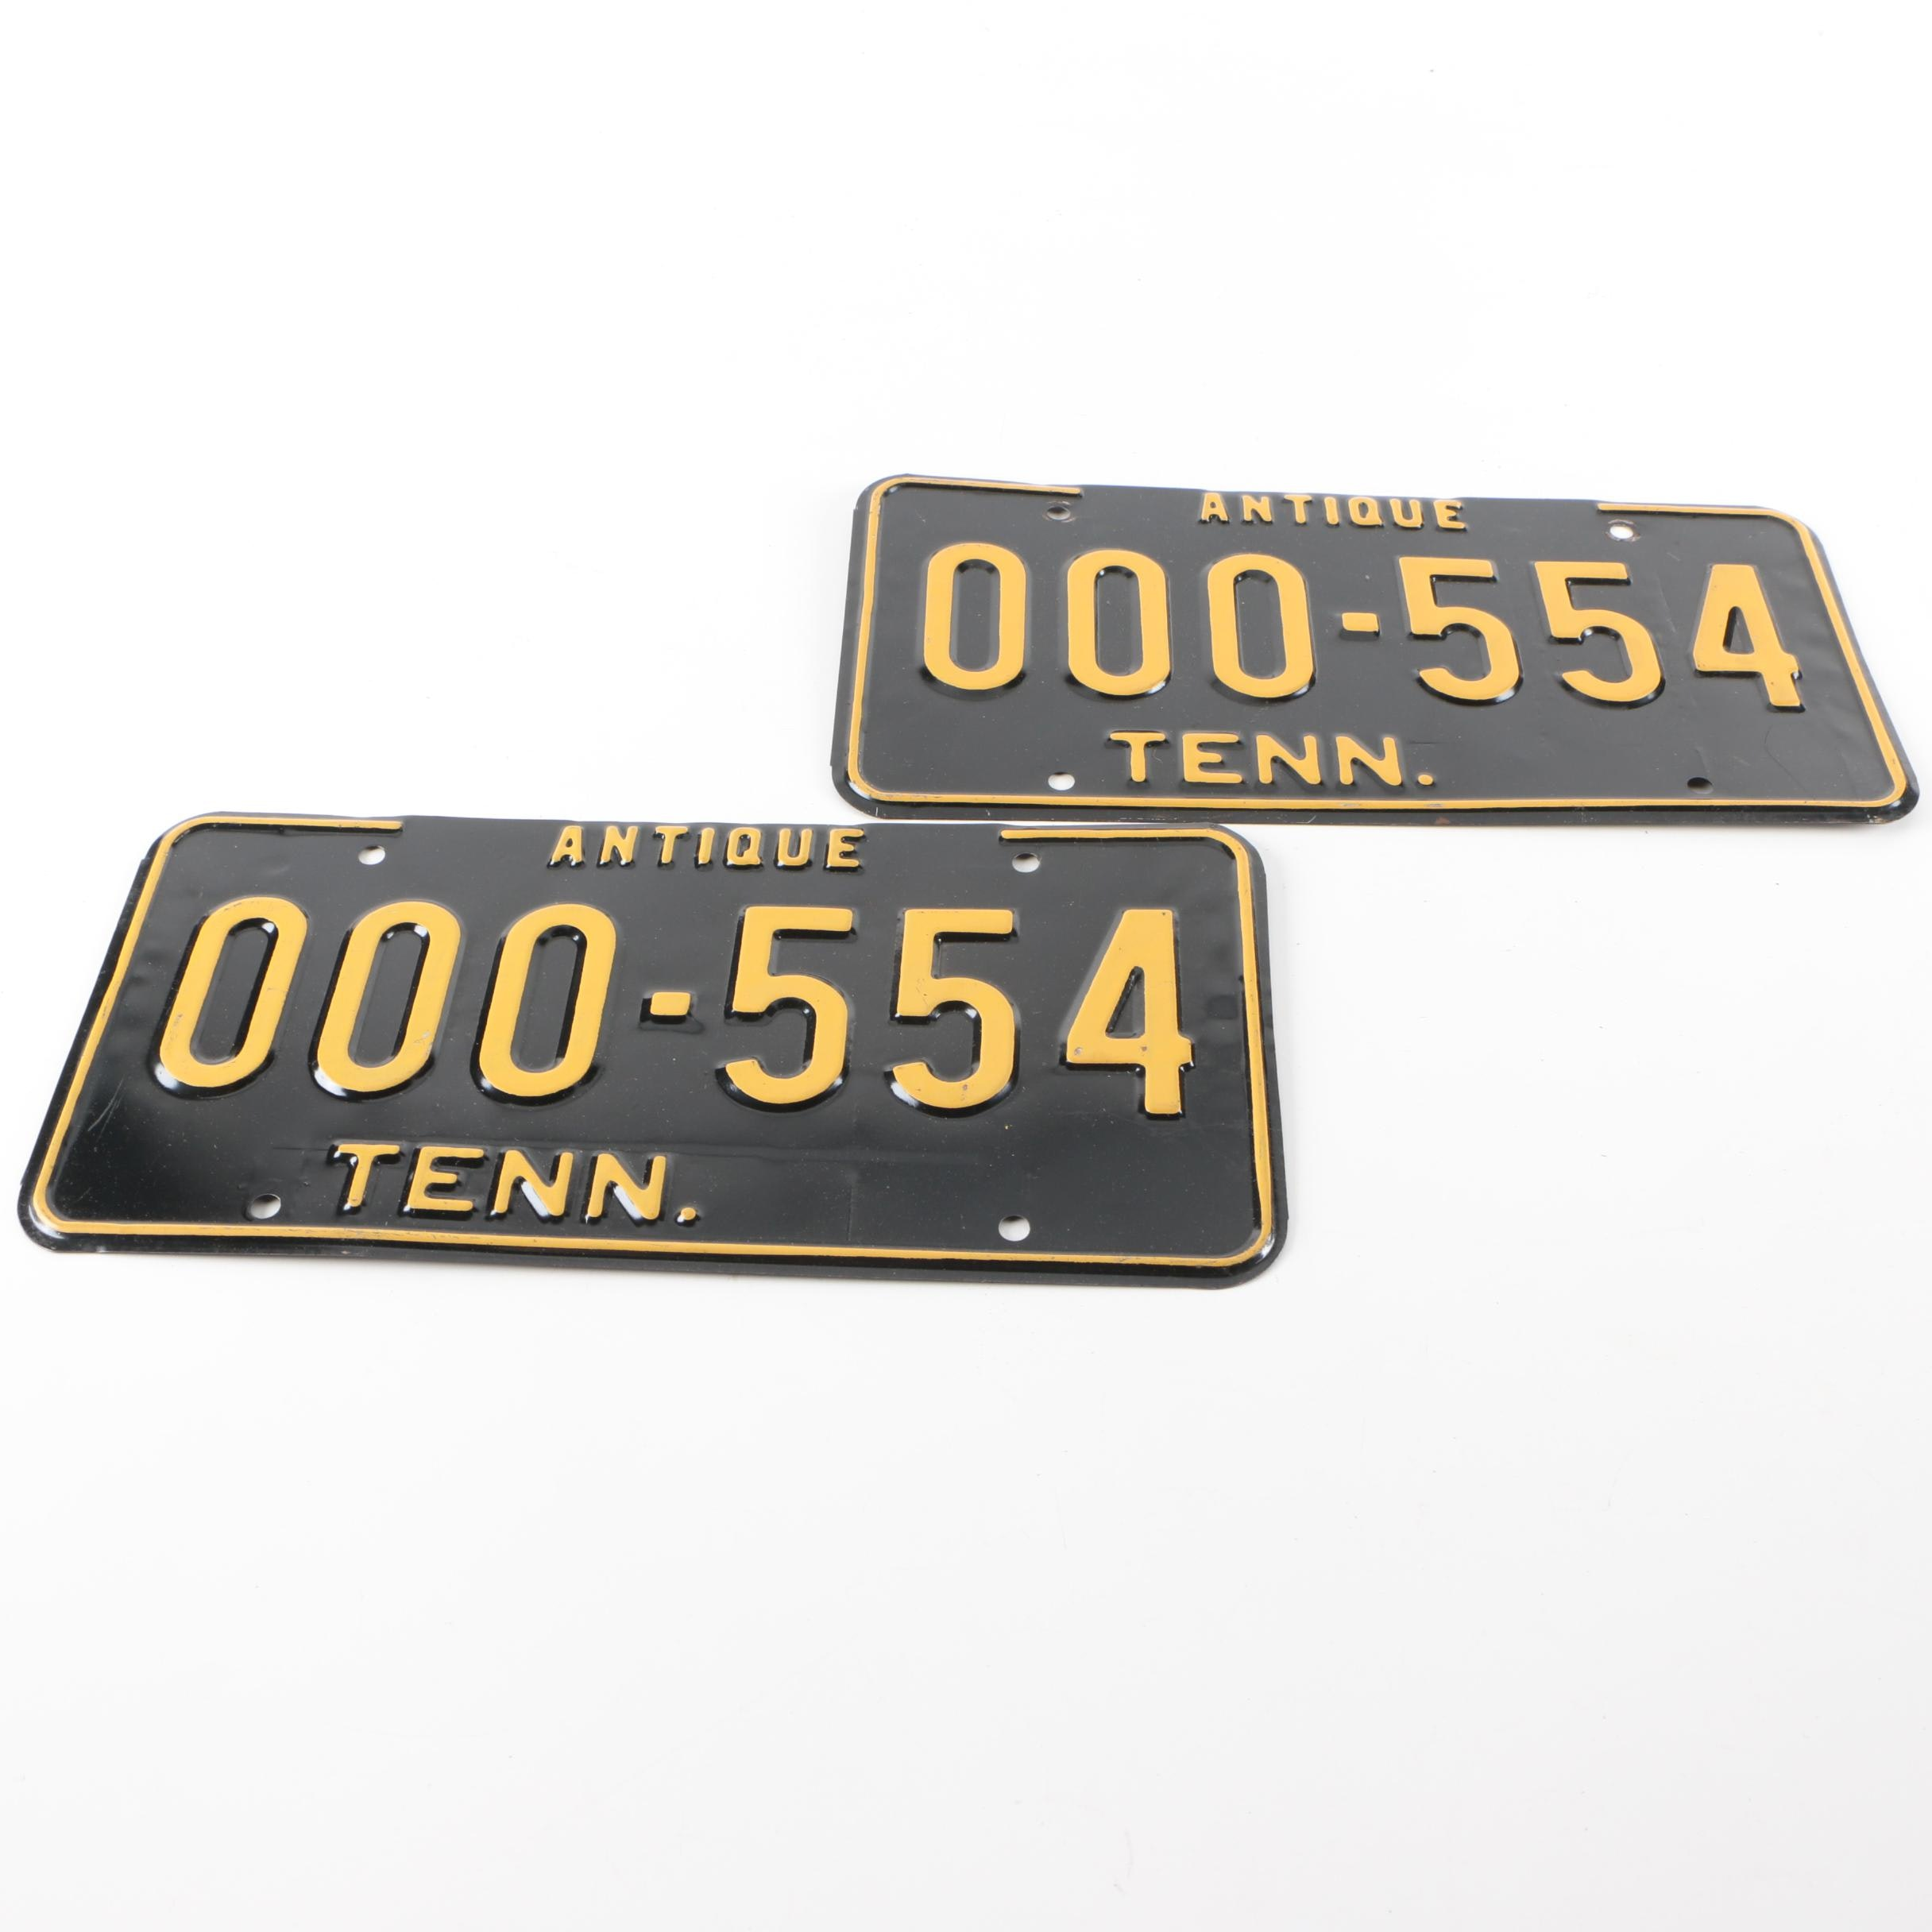 Tennessee Antique Vehicle License Plates